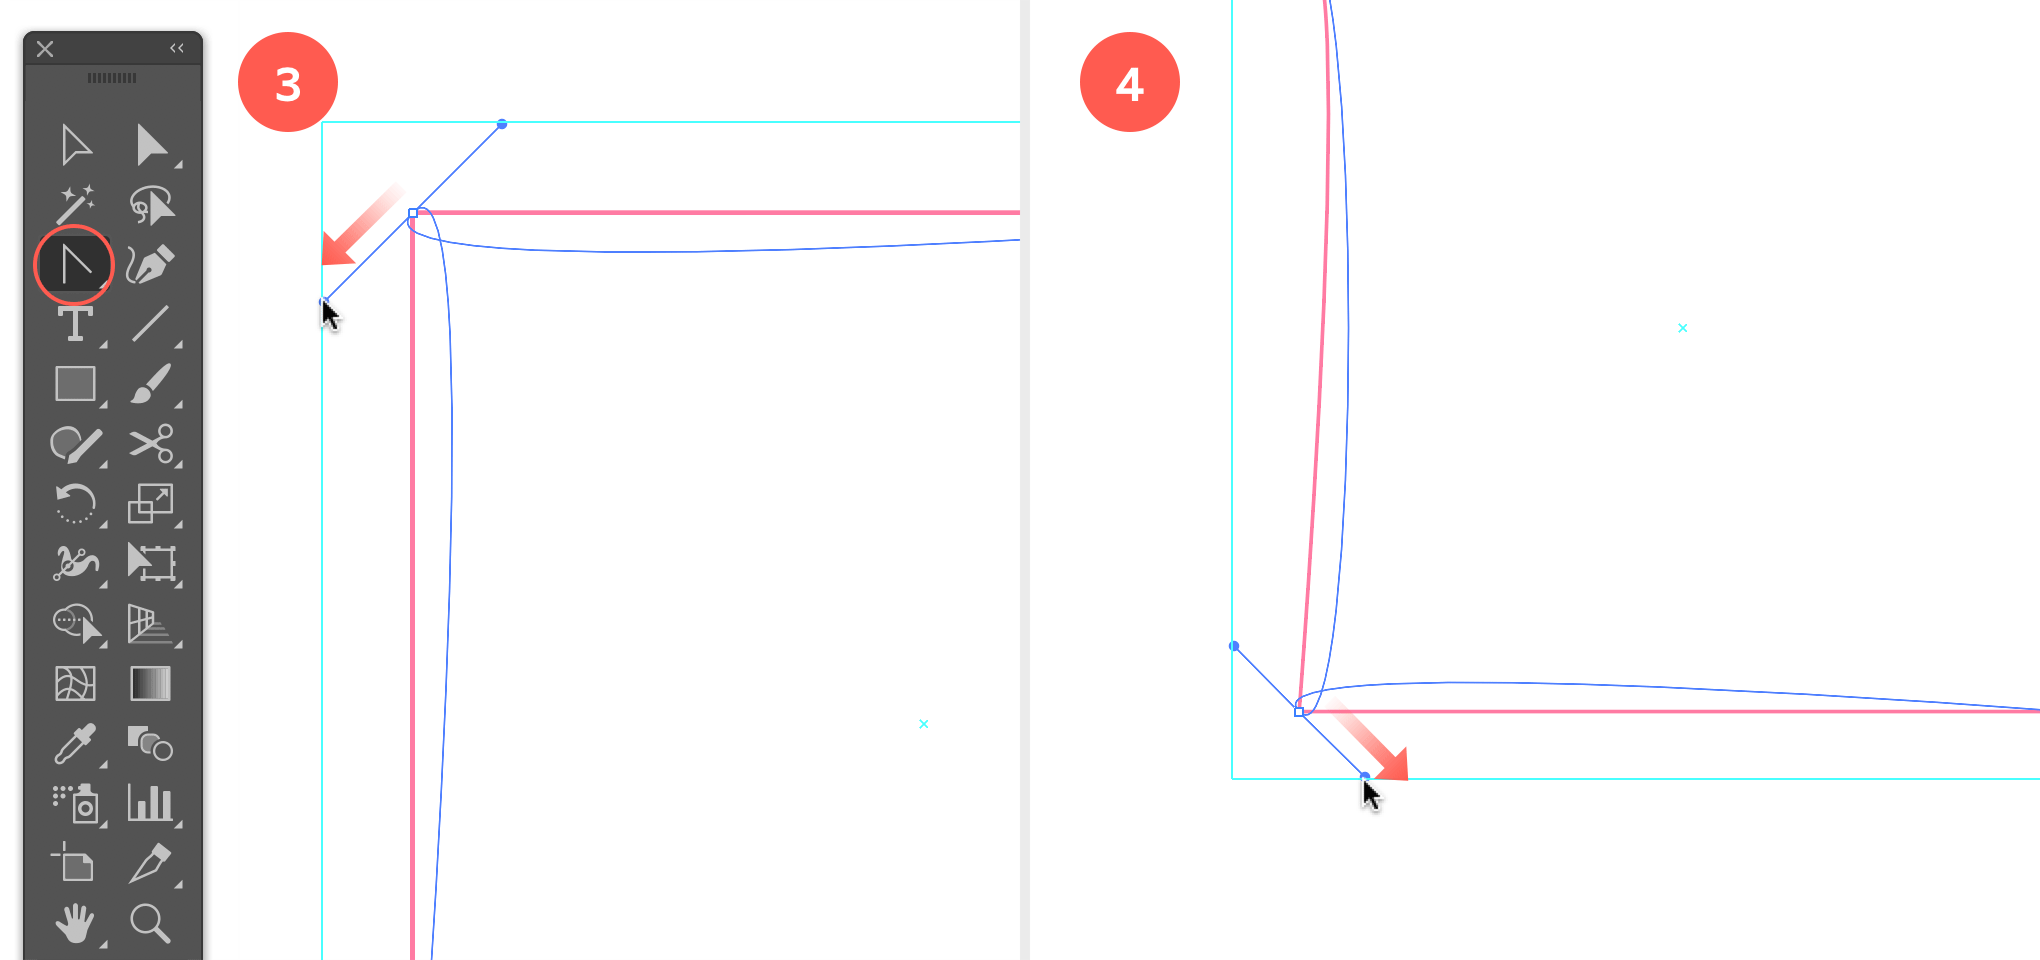 Turn the 4 corner points of the square into bezier anchor points.